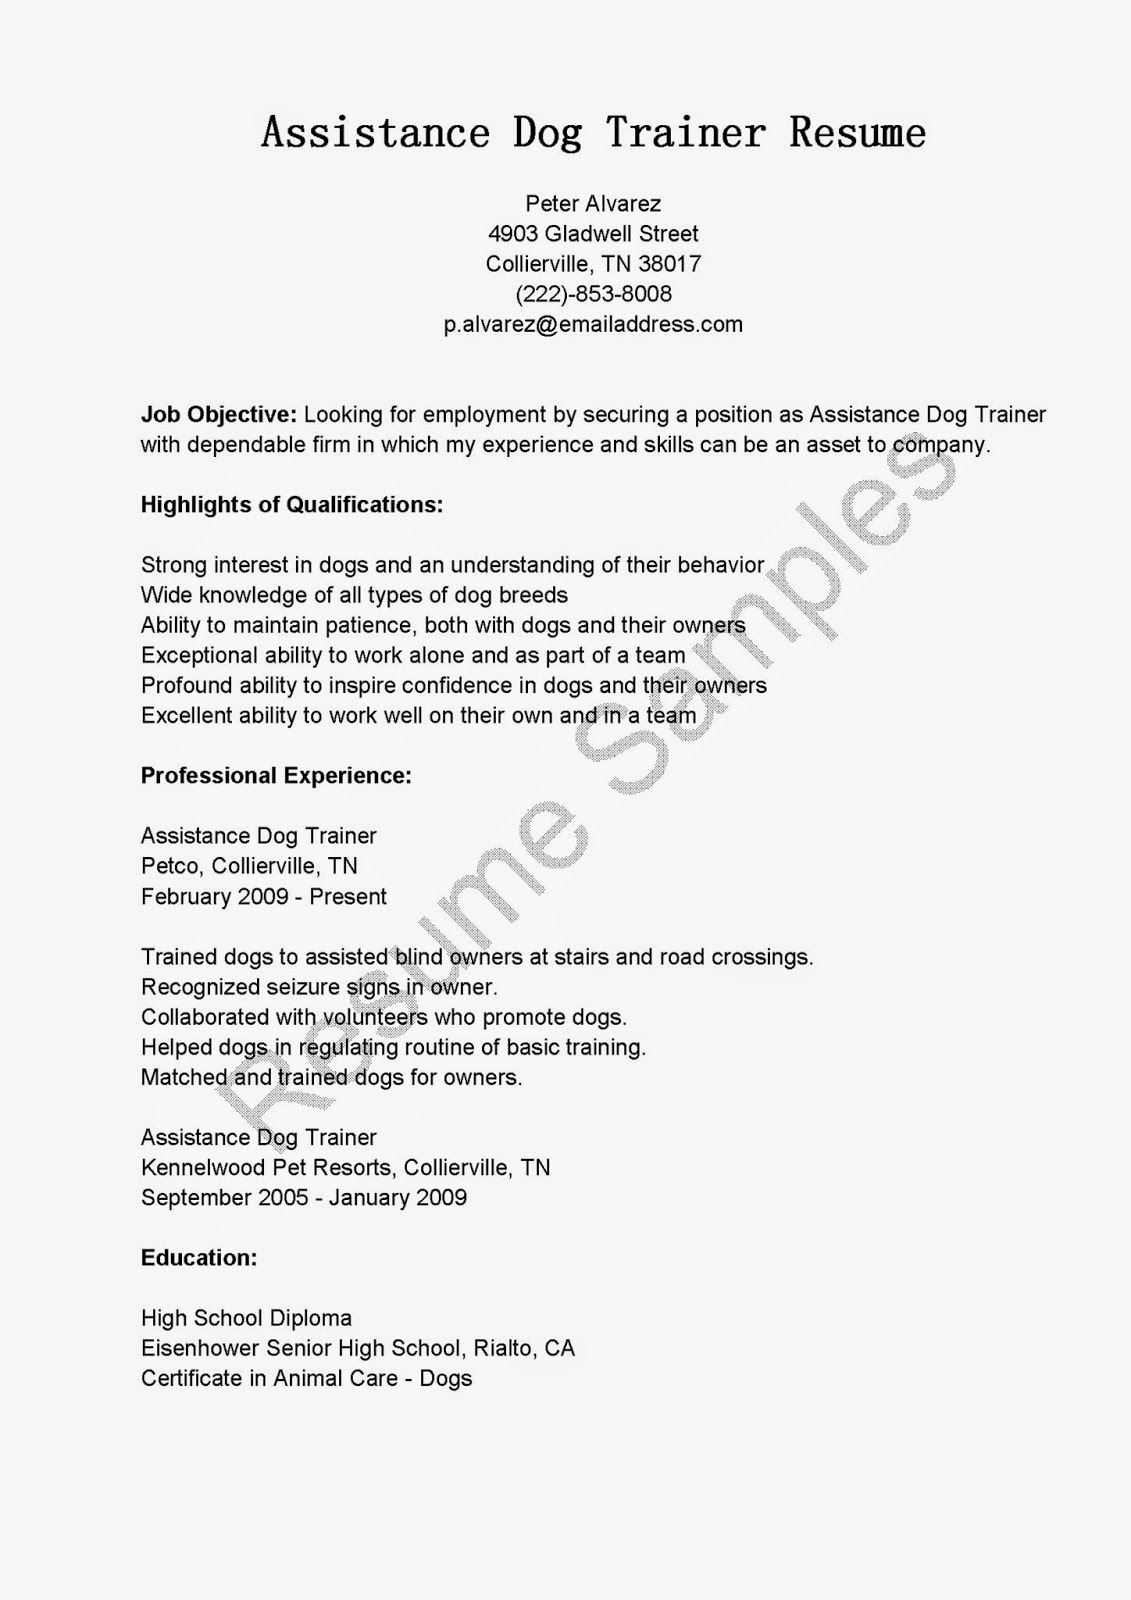 Sample Trainer Resume Resume Samples Assistance Dog Trainer Resume Sample